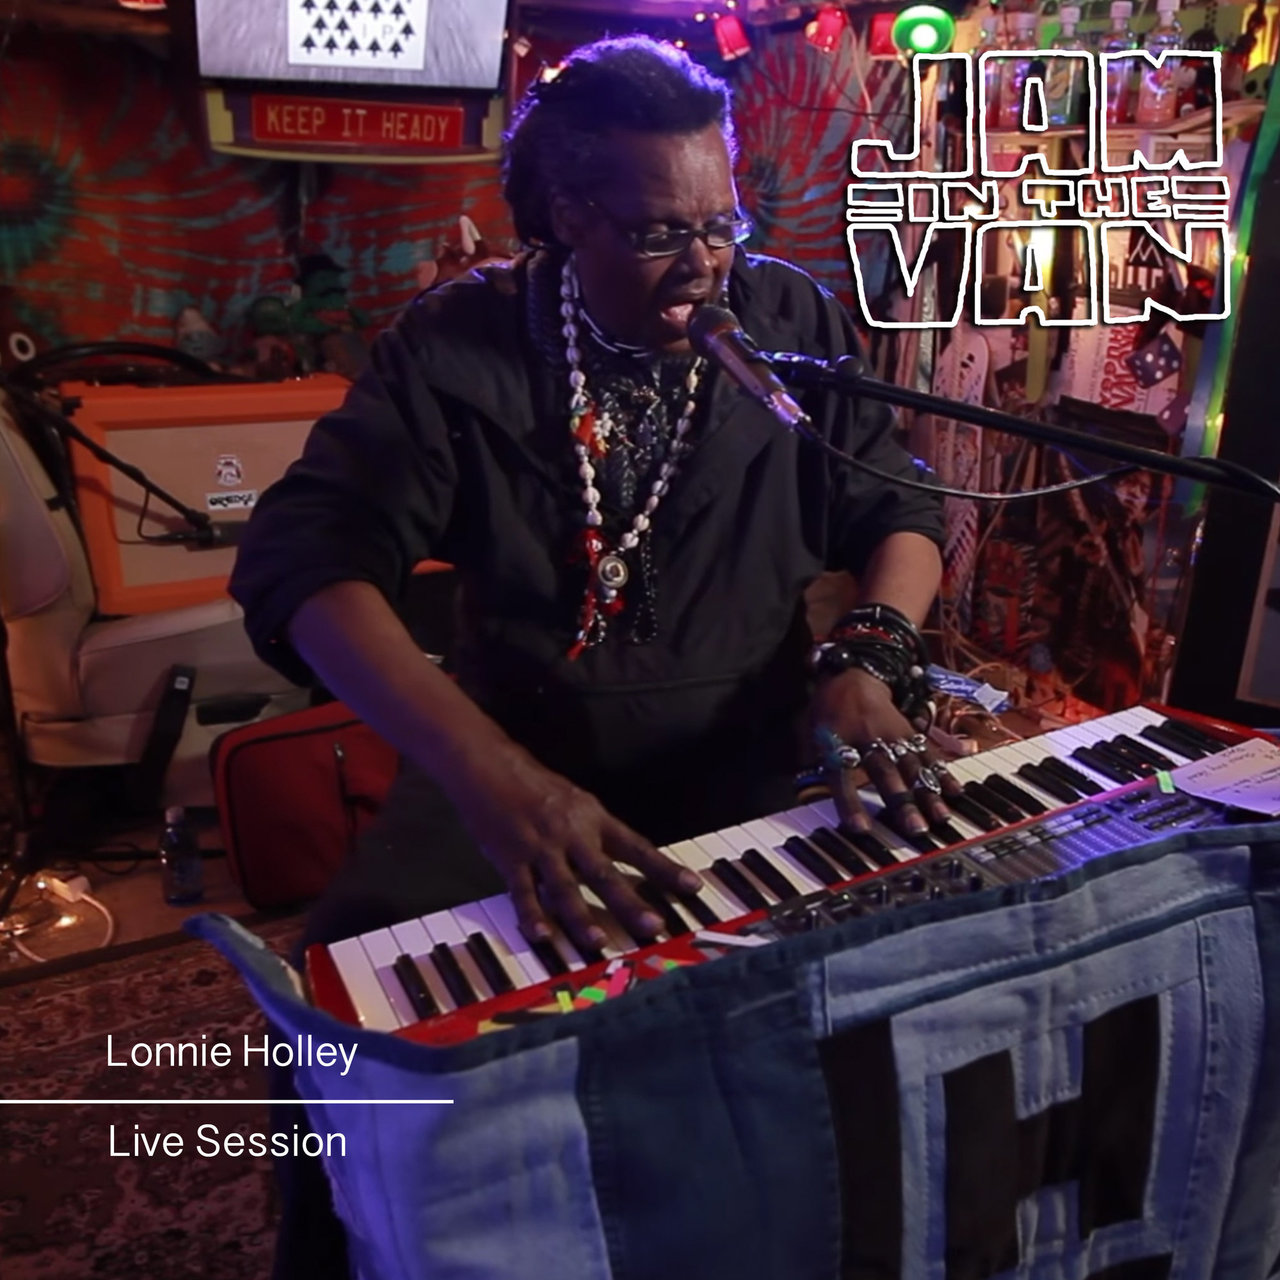 Jam in the Van - Lonnie Holley (Live Session)